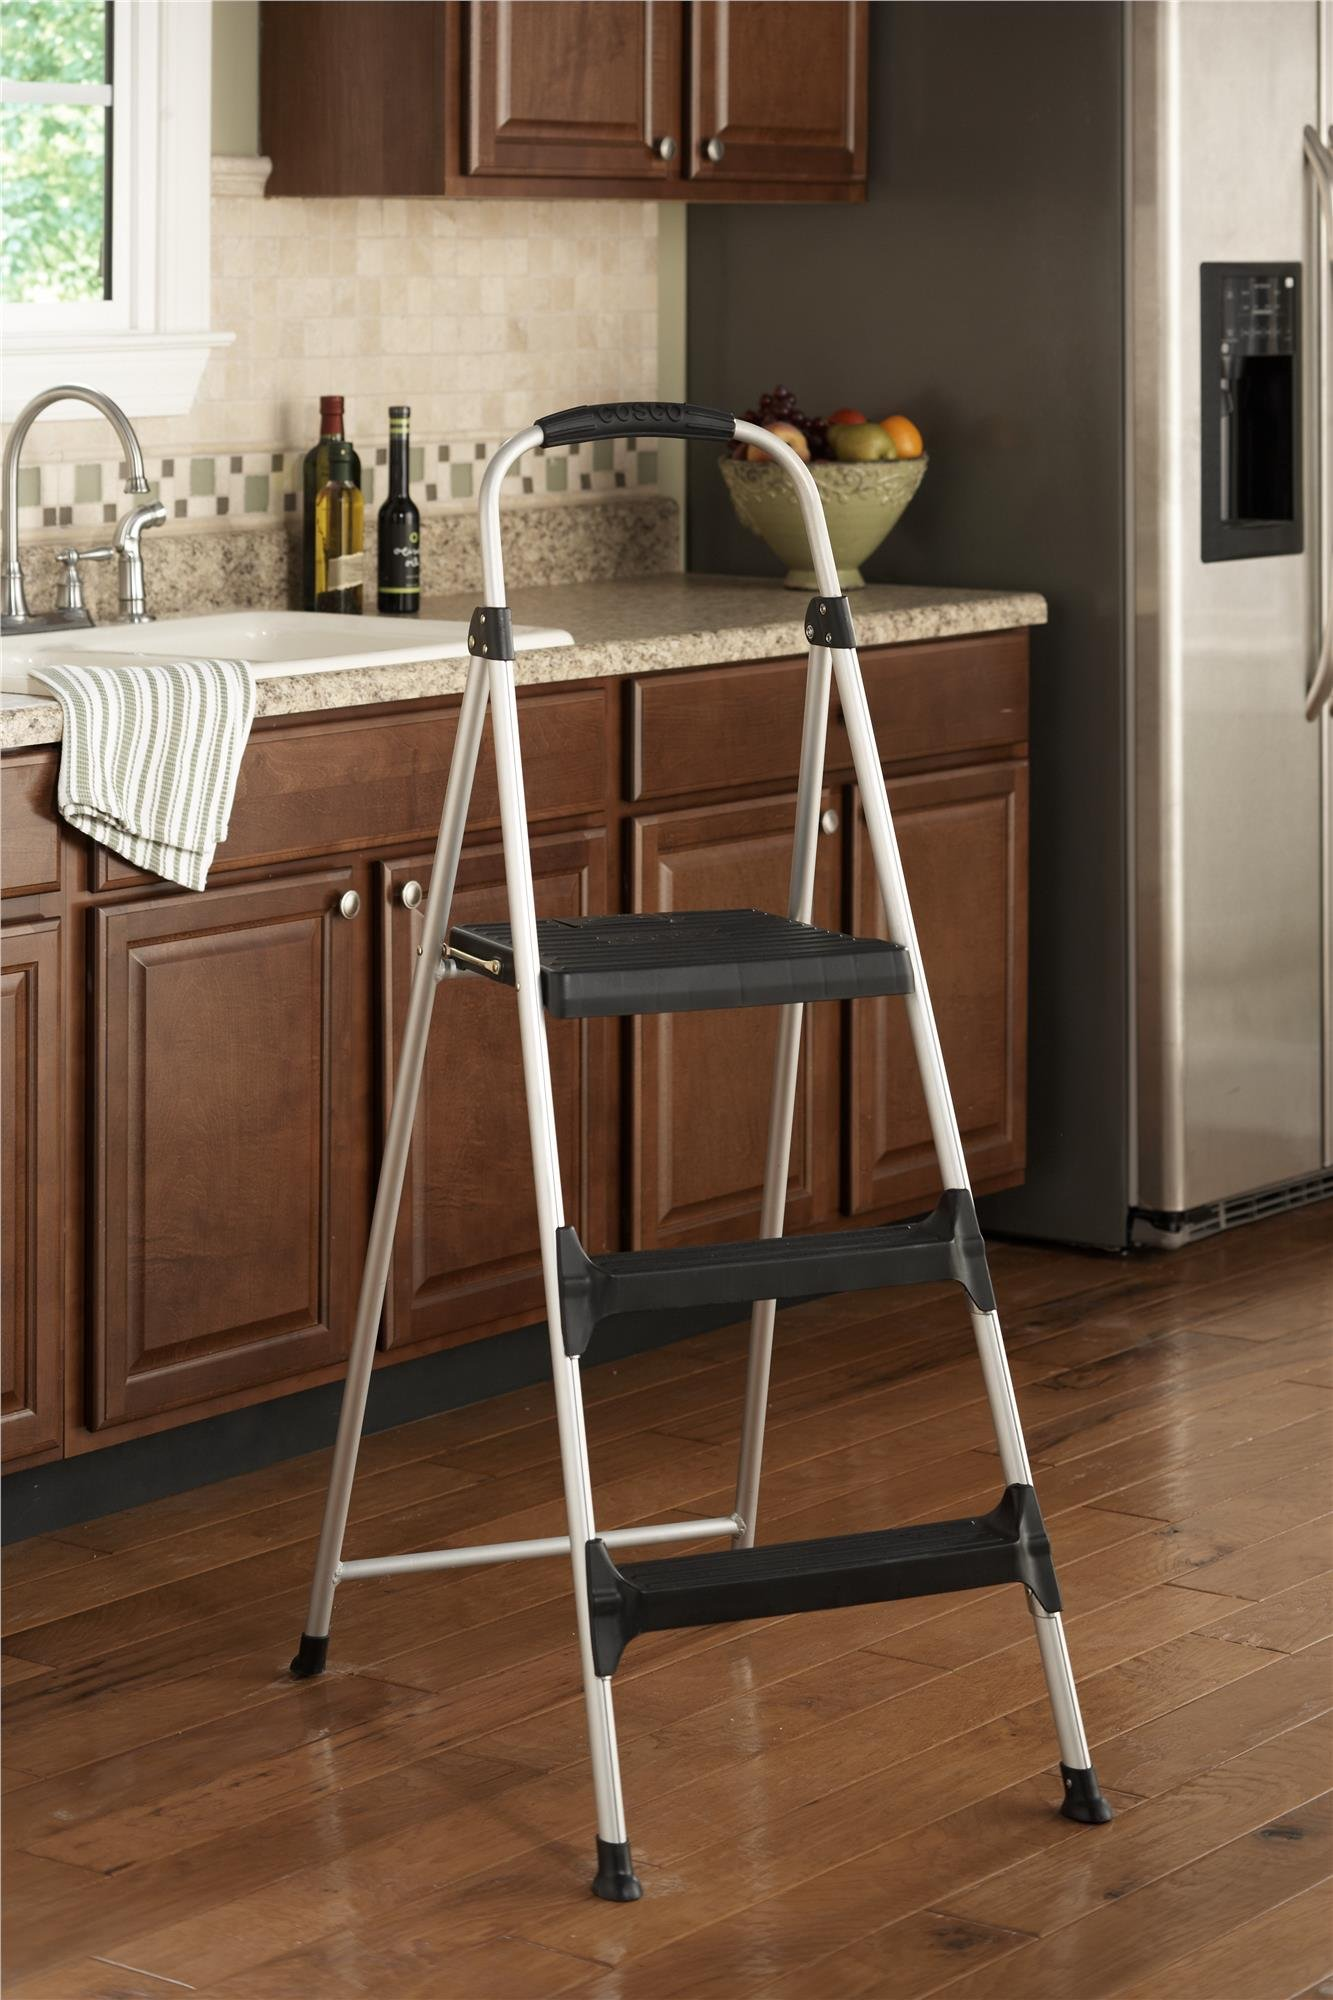 Cosco Signature Step Stool Three-Step Aluminum with Plastic Steps by Cosco (Image #2)